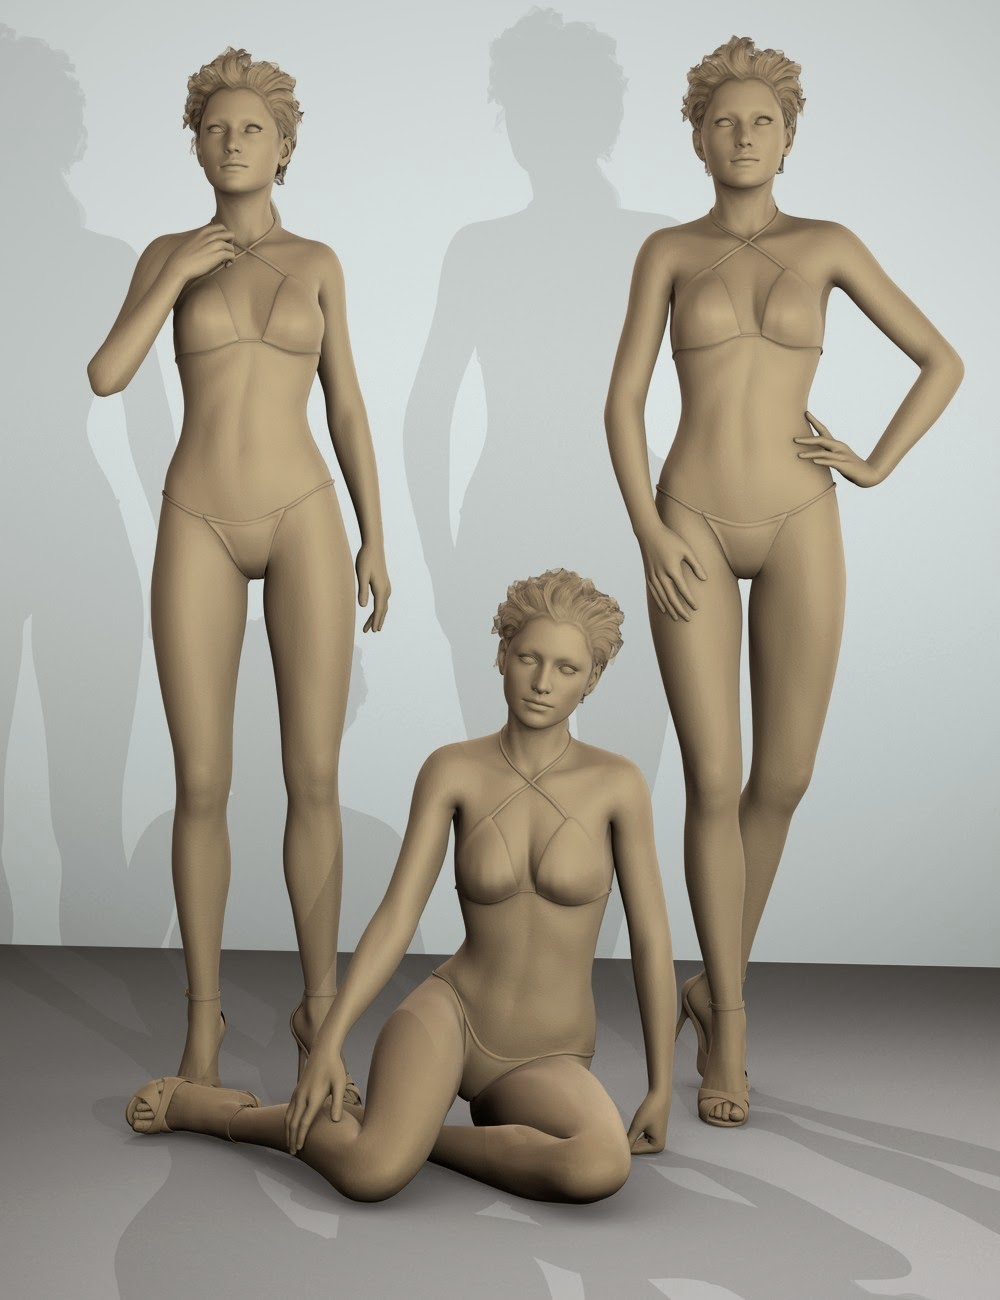 3d Models - Sophisticated: Poses for Victoria 6